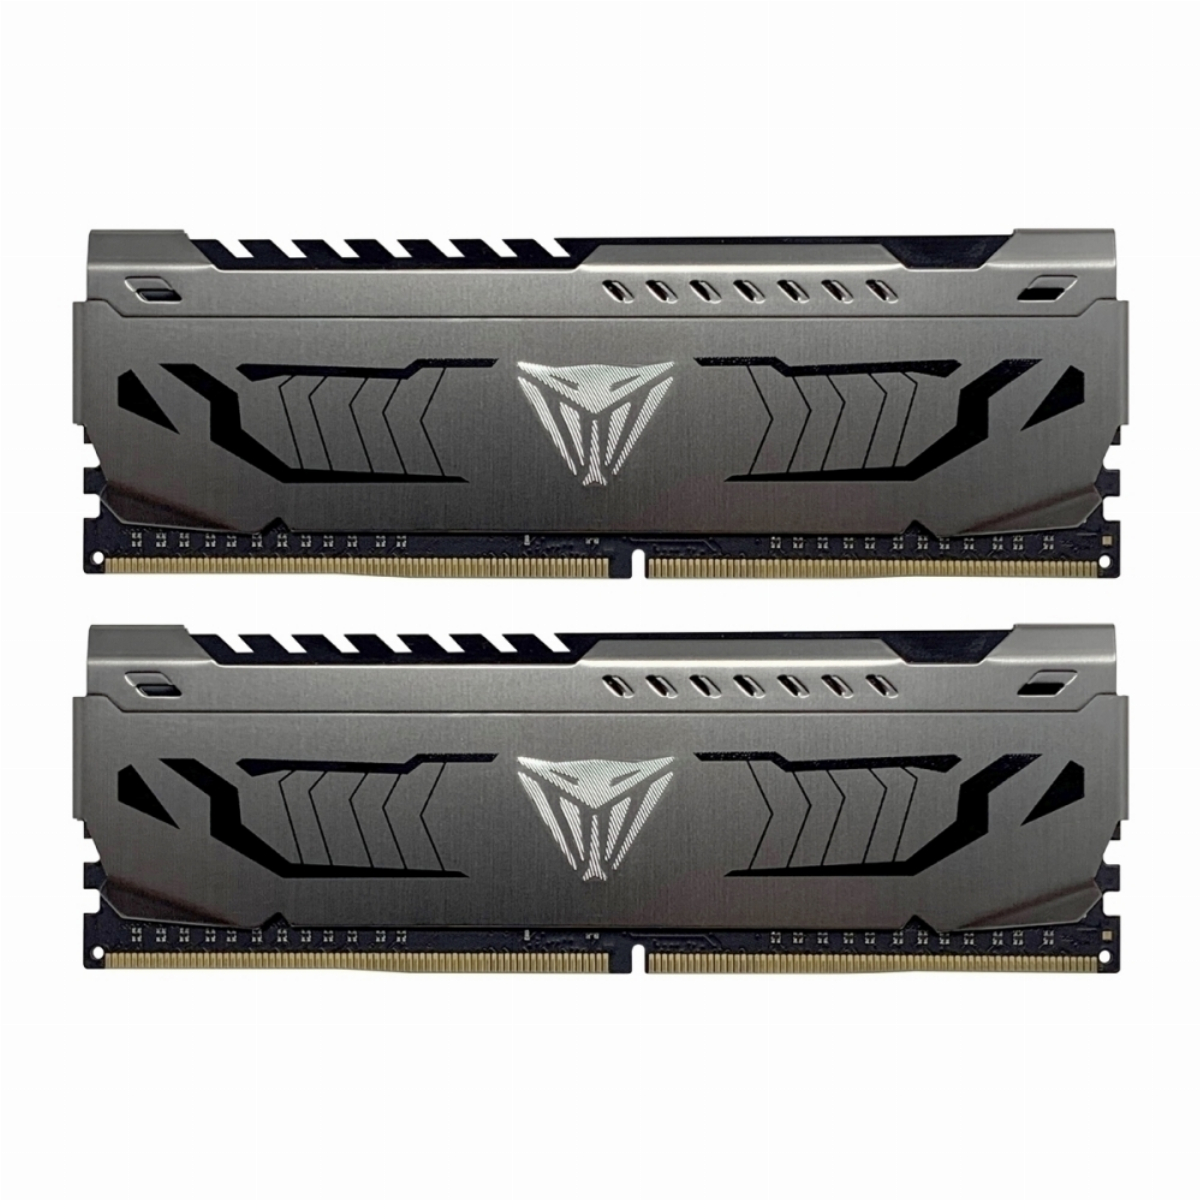 Памет Patriot Viper Steel 32GB (2x16GB) 3600Mhz DDR4 CL18